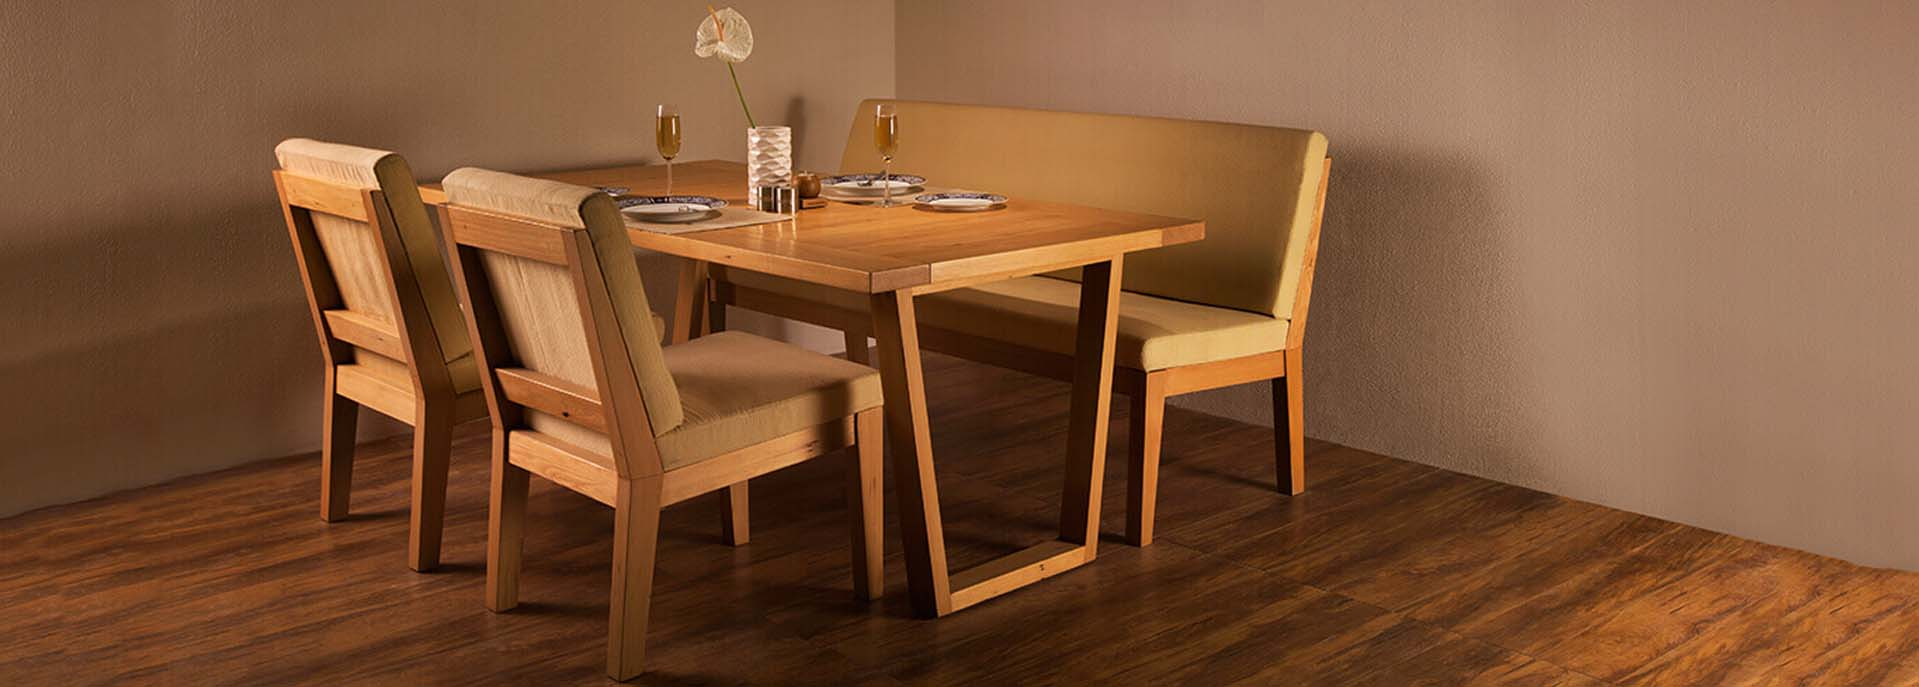 Wood Applications Wood Furniture Wooden Table Canadian Wood